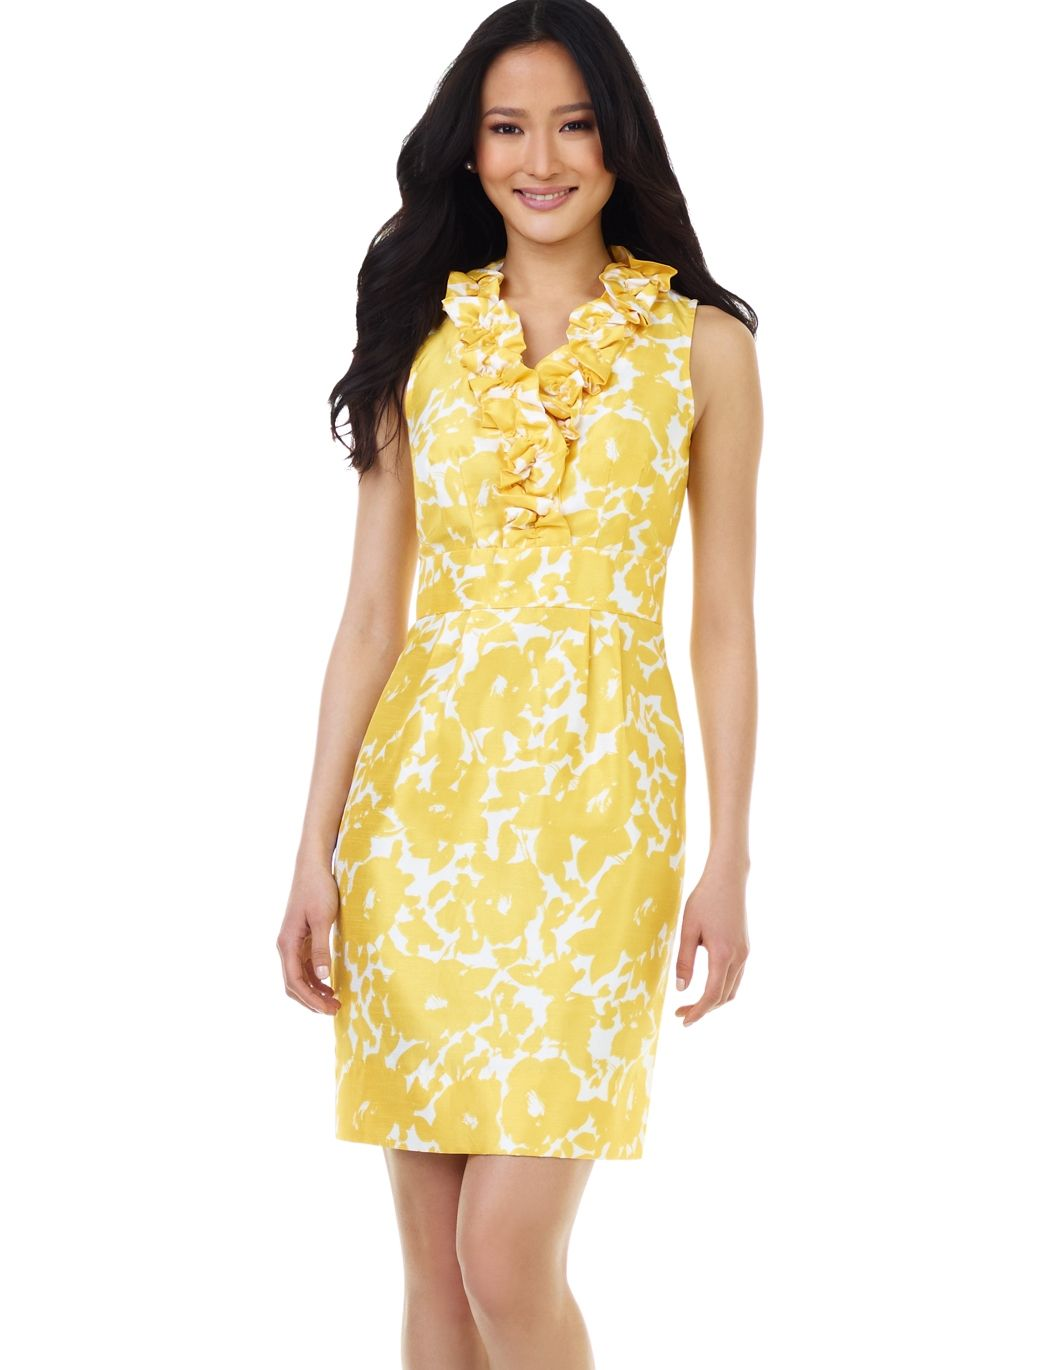 Dress obvious yellow obsession pinterest rush dresses